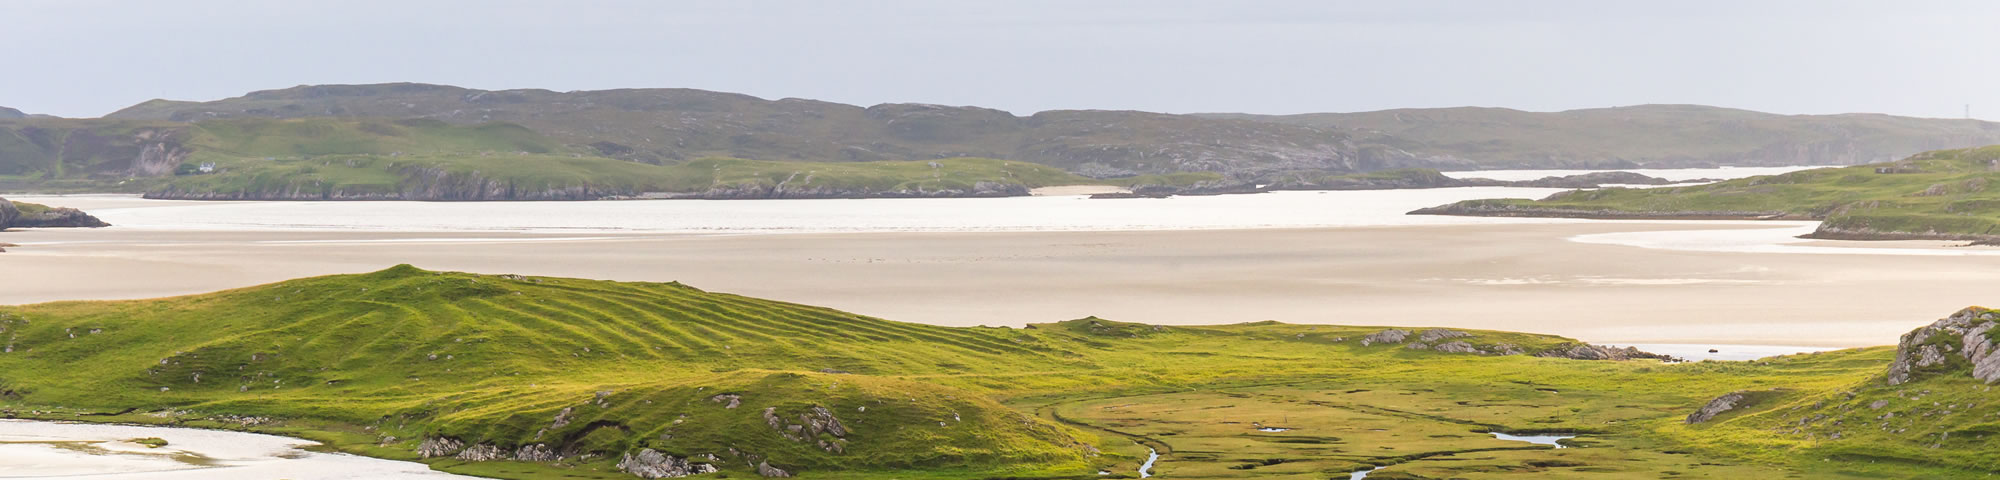 Uig Sands, Isle of Lewis, Outer Hebrides